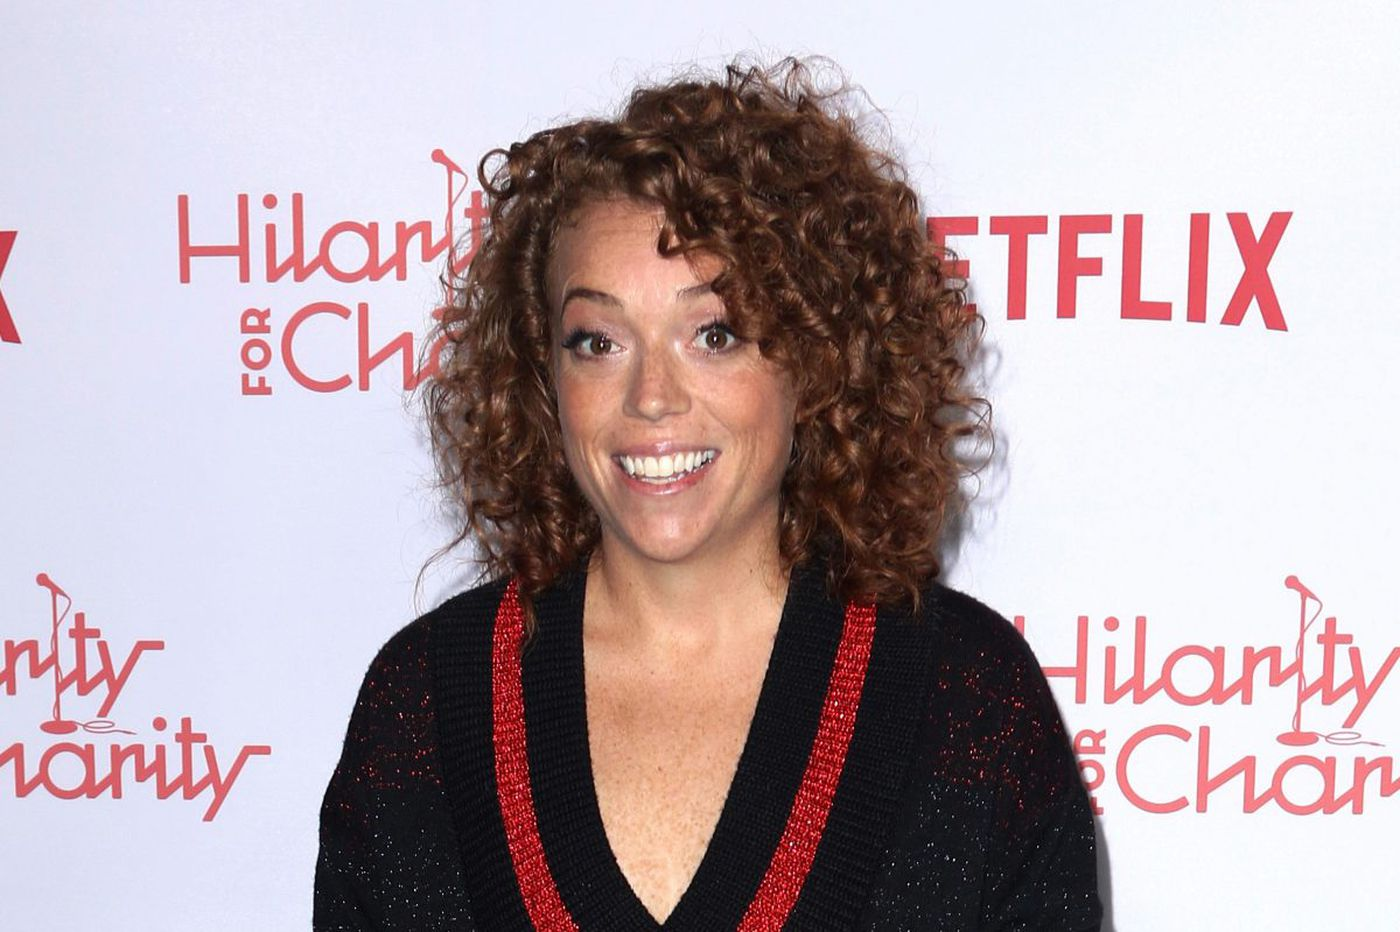 No, Michelle Wolf was not arrested for bestiality in Hershey, Pa.